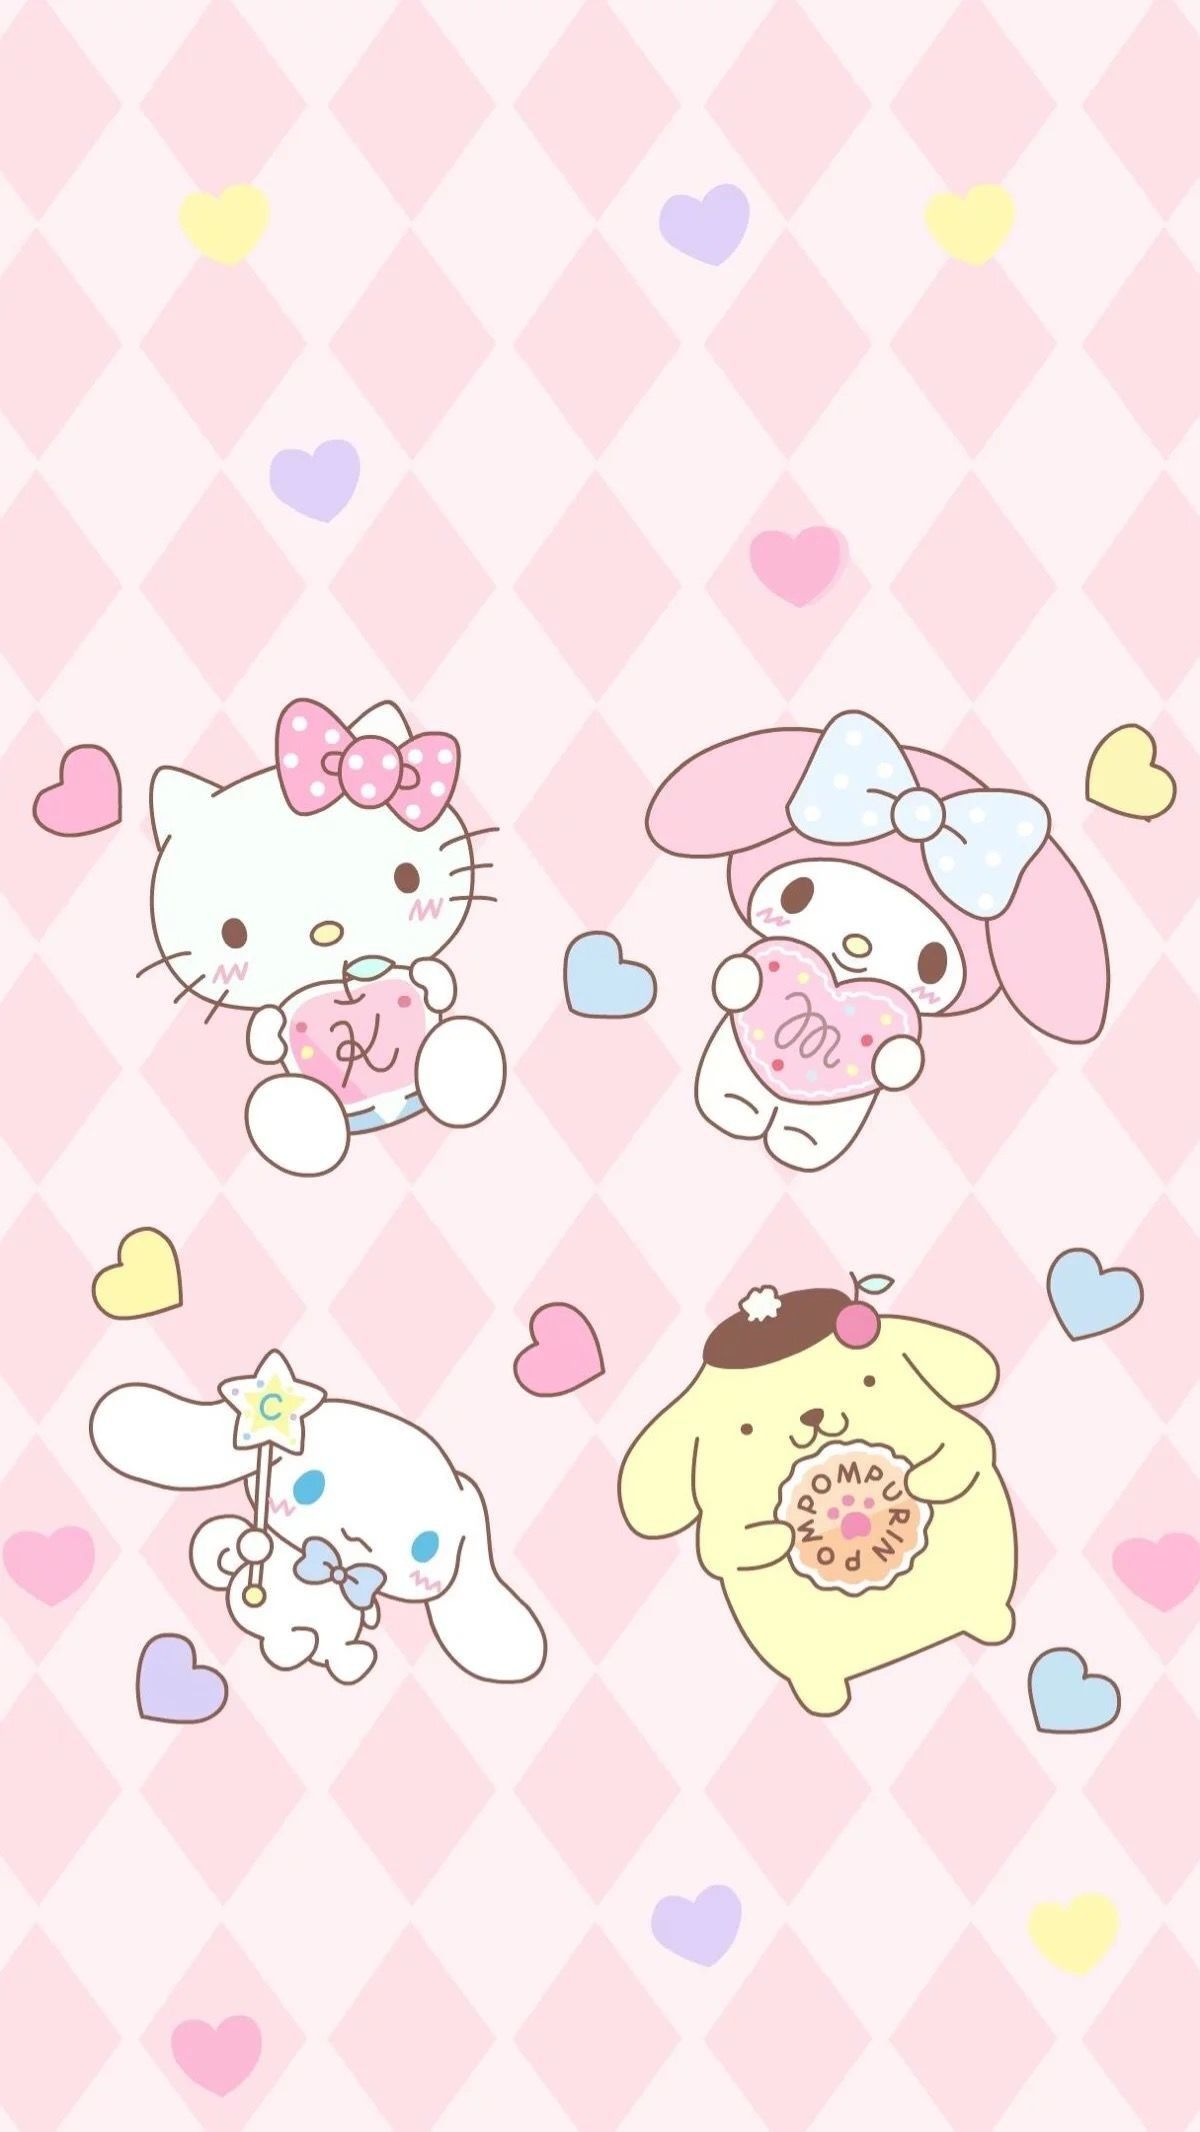 89 Kawaii Phone Wallpapers On Wallpaperplay Hello Kitty Pictures Sanrio Wallpaper Hello Kitty Images